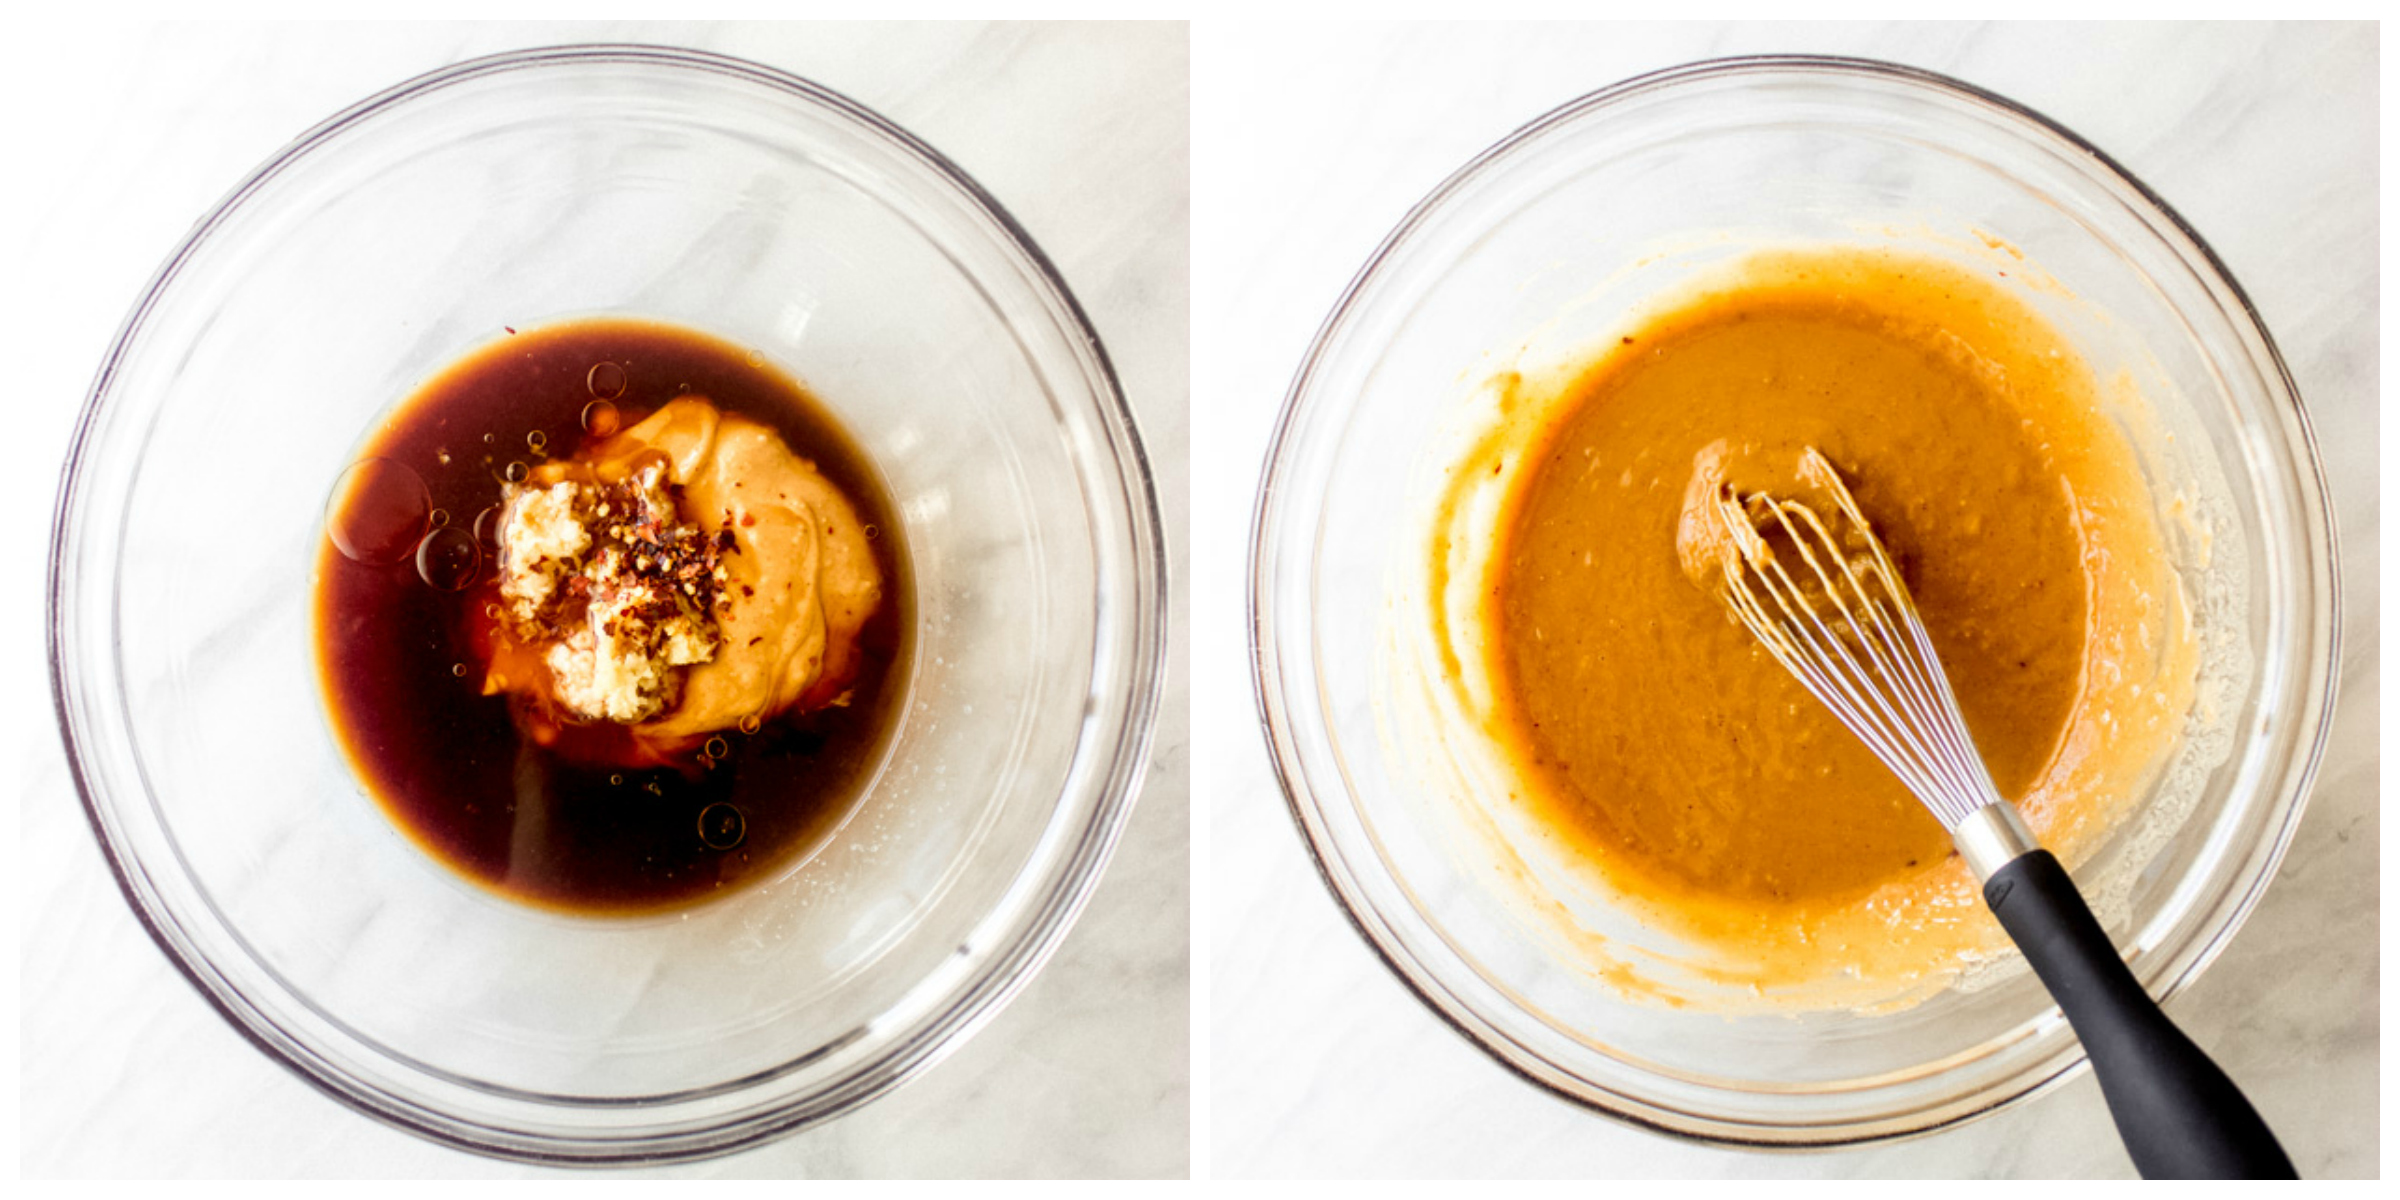 Step by step on how to make peanut sauce for spring rolls